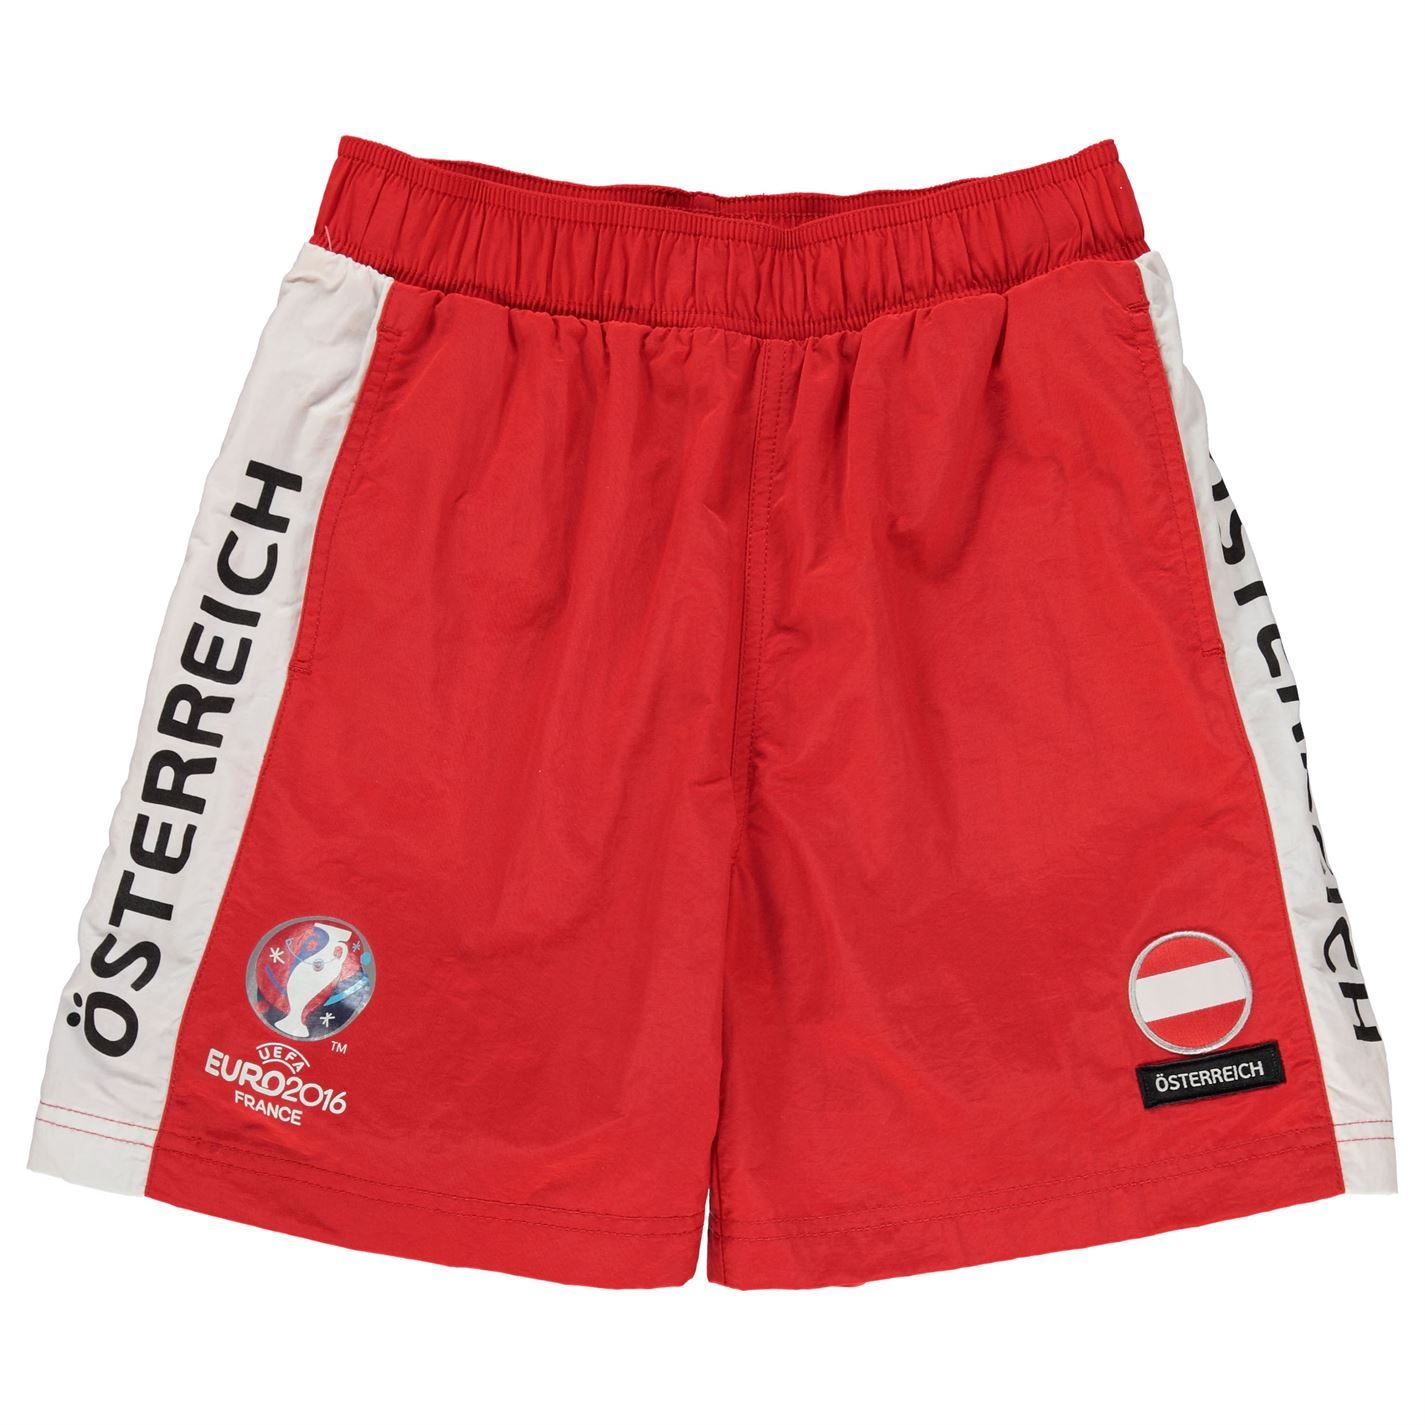 Design Womens Athletic & Cheer Shorts Online. No Minimums or Set-ups!